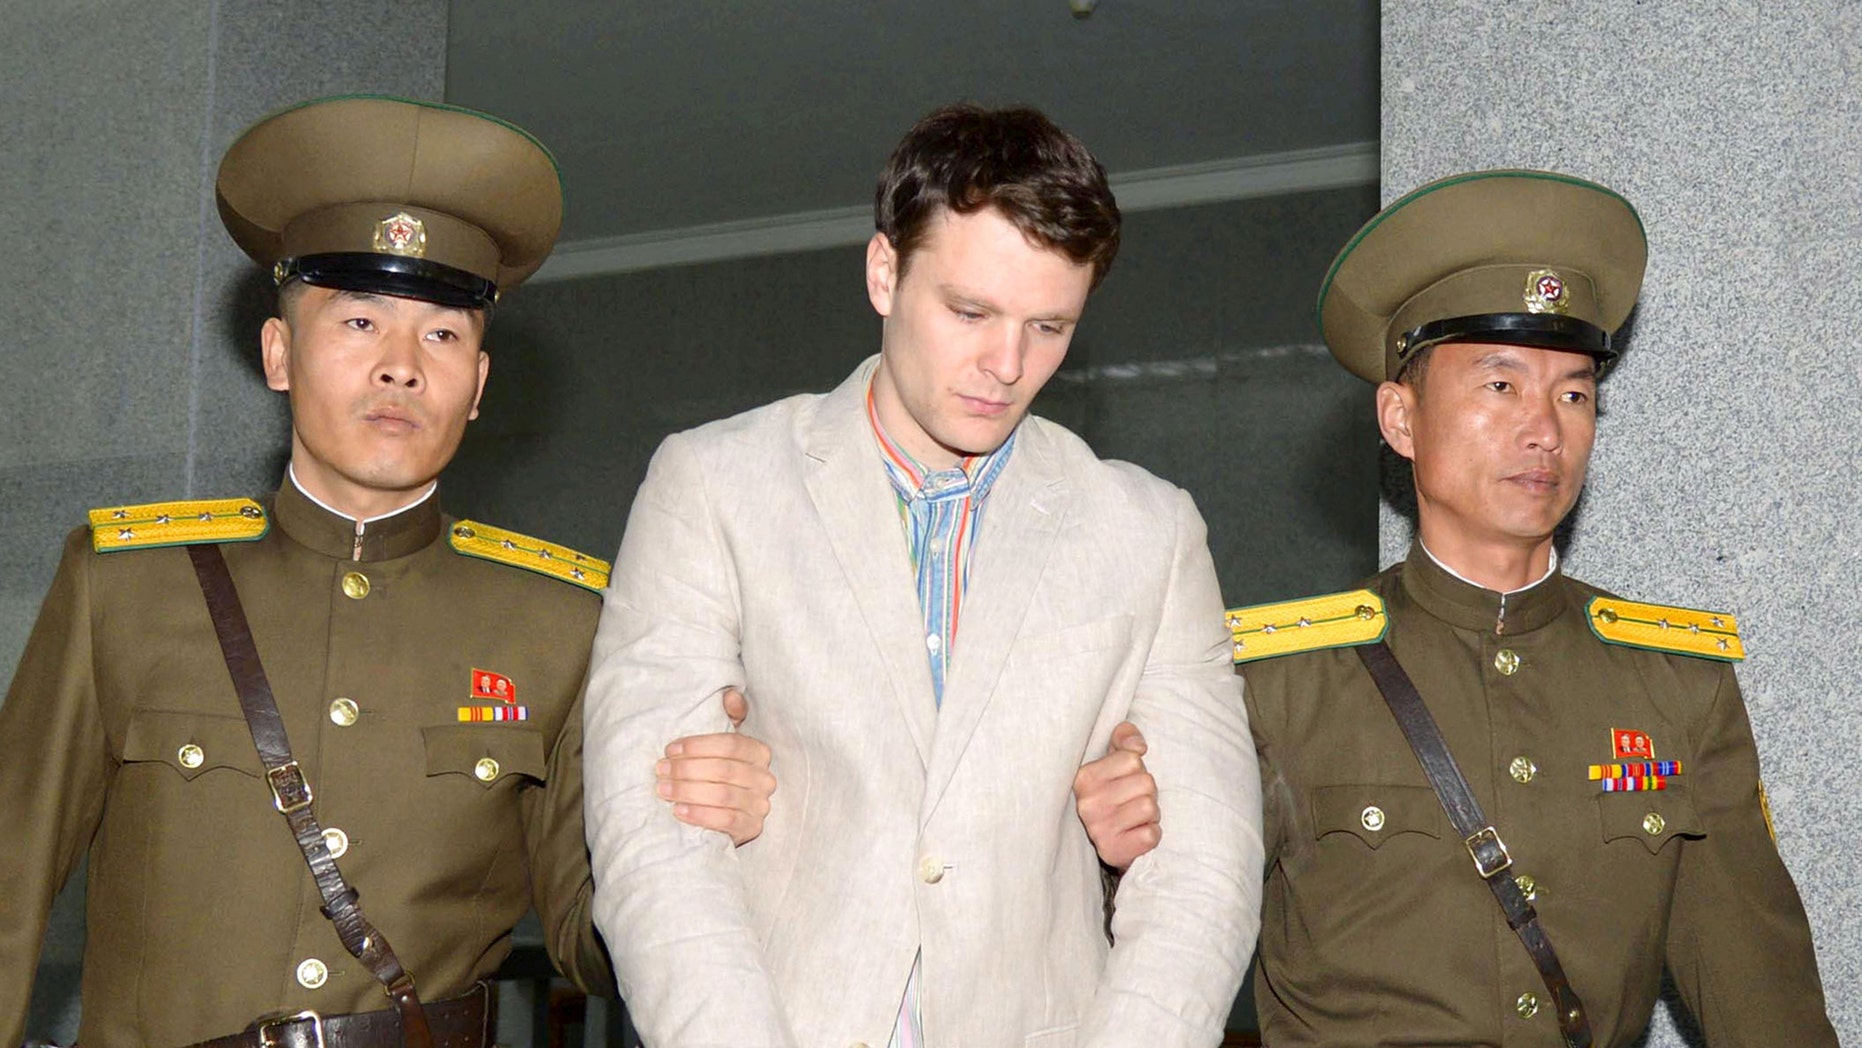 Otto Frederick Warmbier (C), a University of Virginia student who was detained in North Korea, is taken to North Korea's top court in Pyongyang, North Korea, in this photo released by Kyodo March 16, 2016.